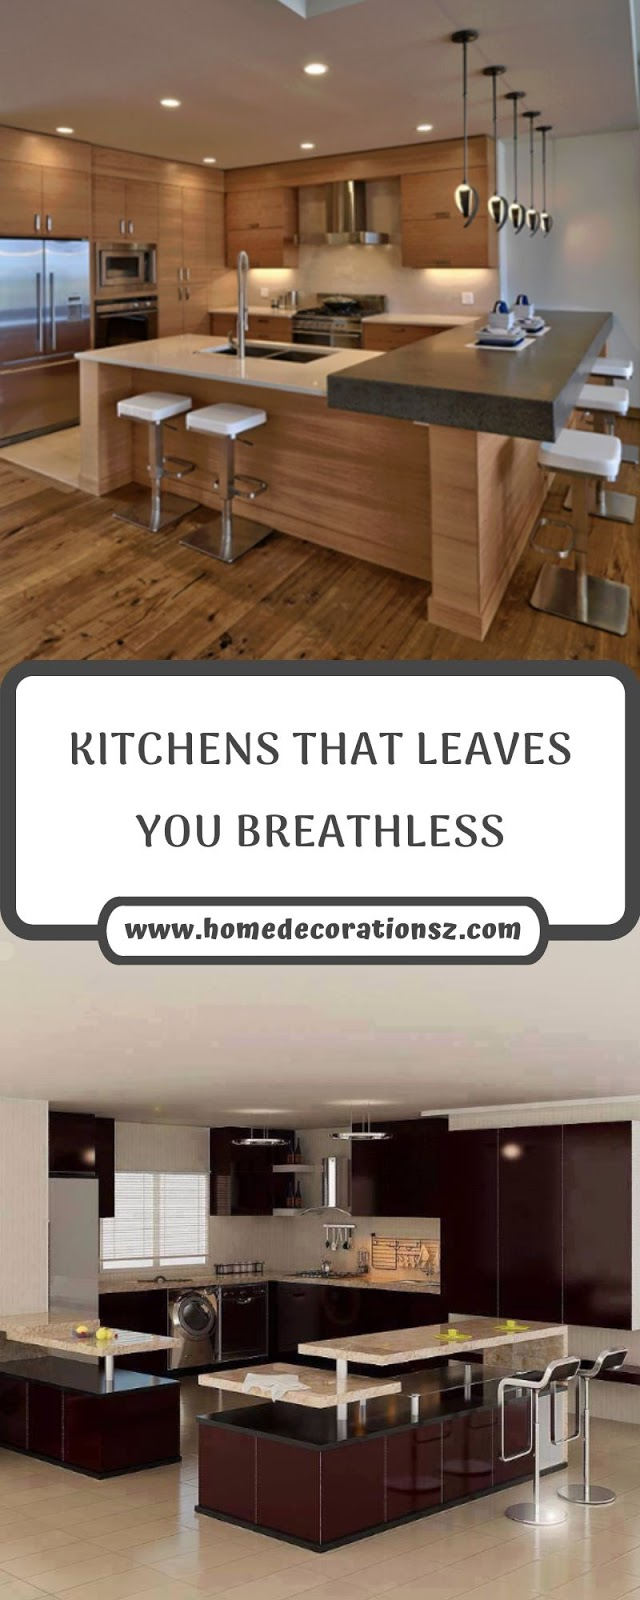 KITCHENS THAT LEAVES YOU BREATHLESS